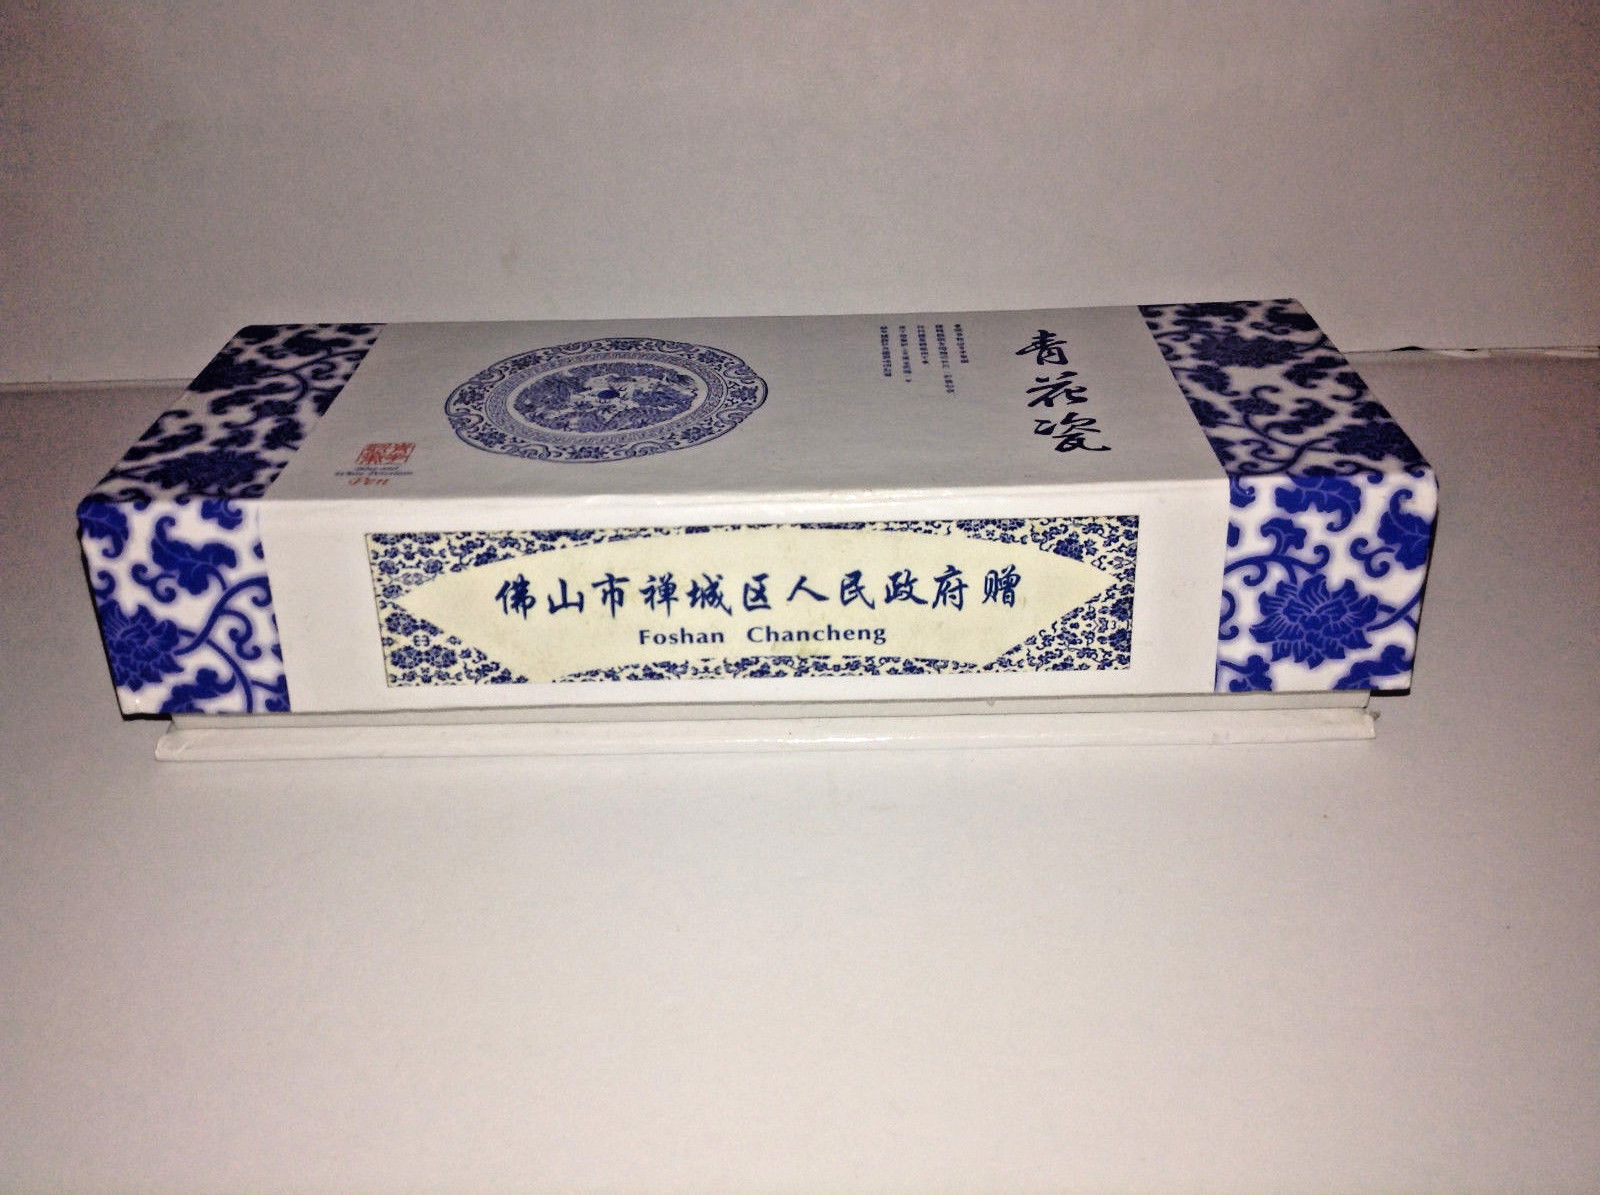 Foshan Chancheng Blue and White Porcelain Pen